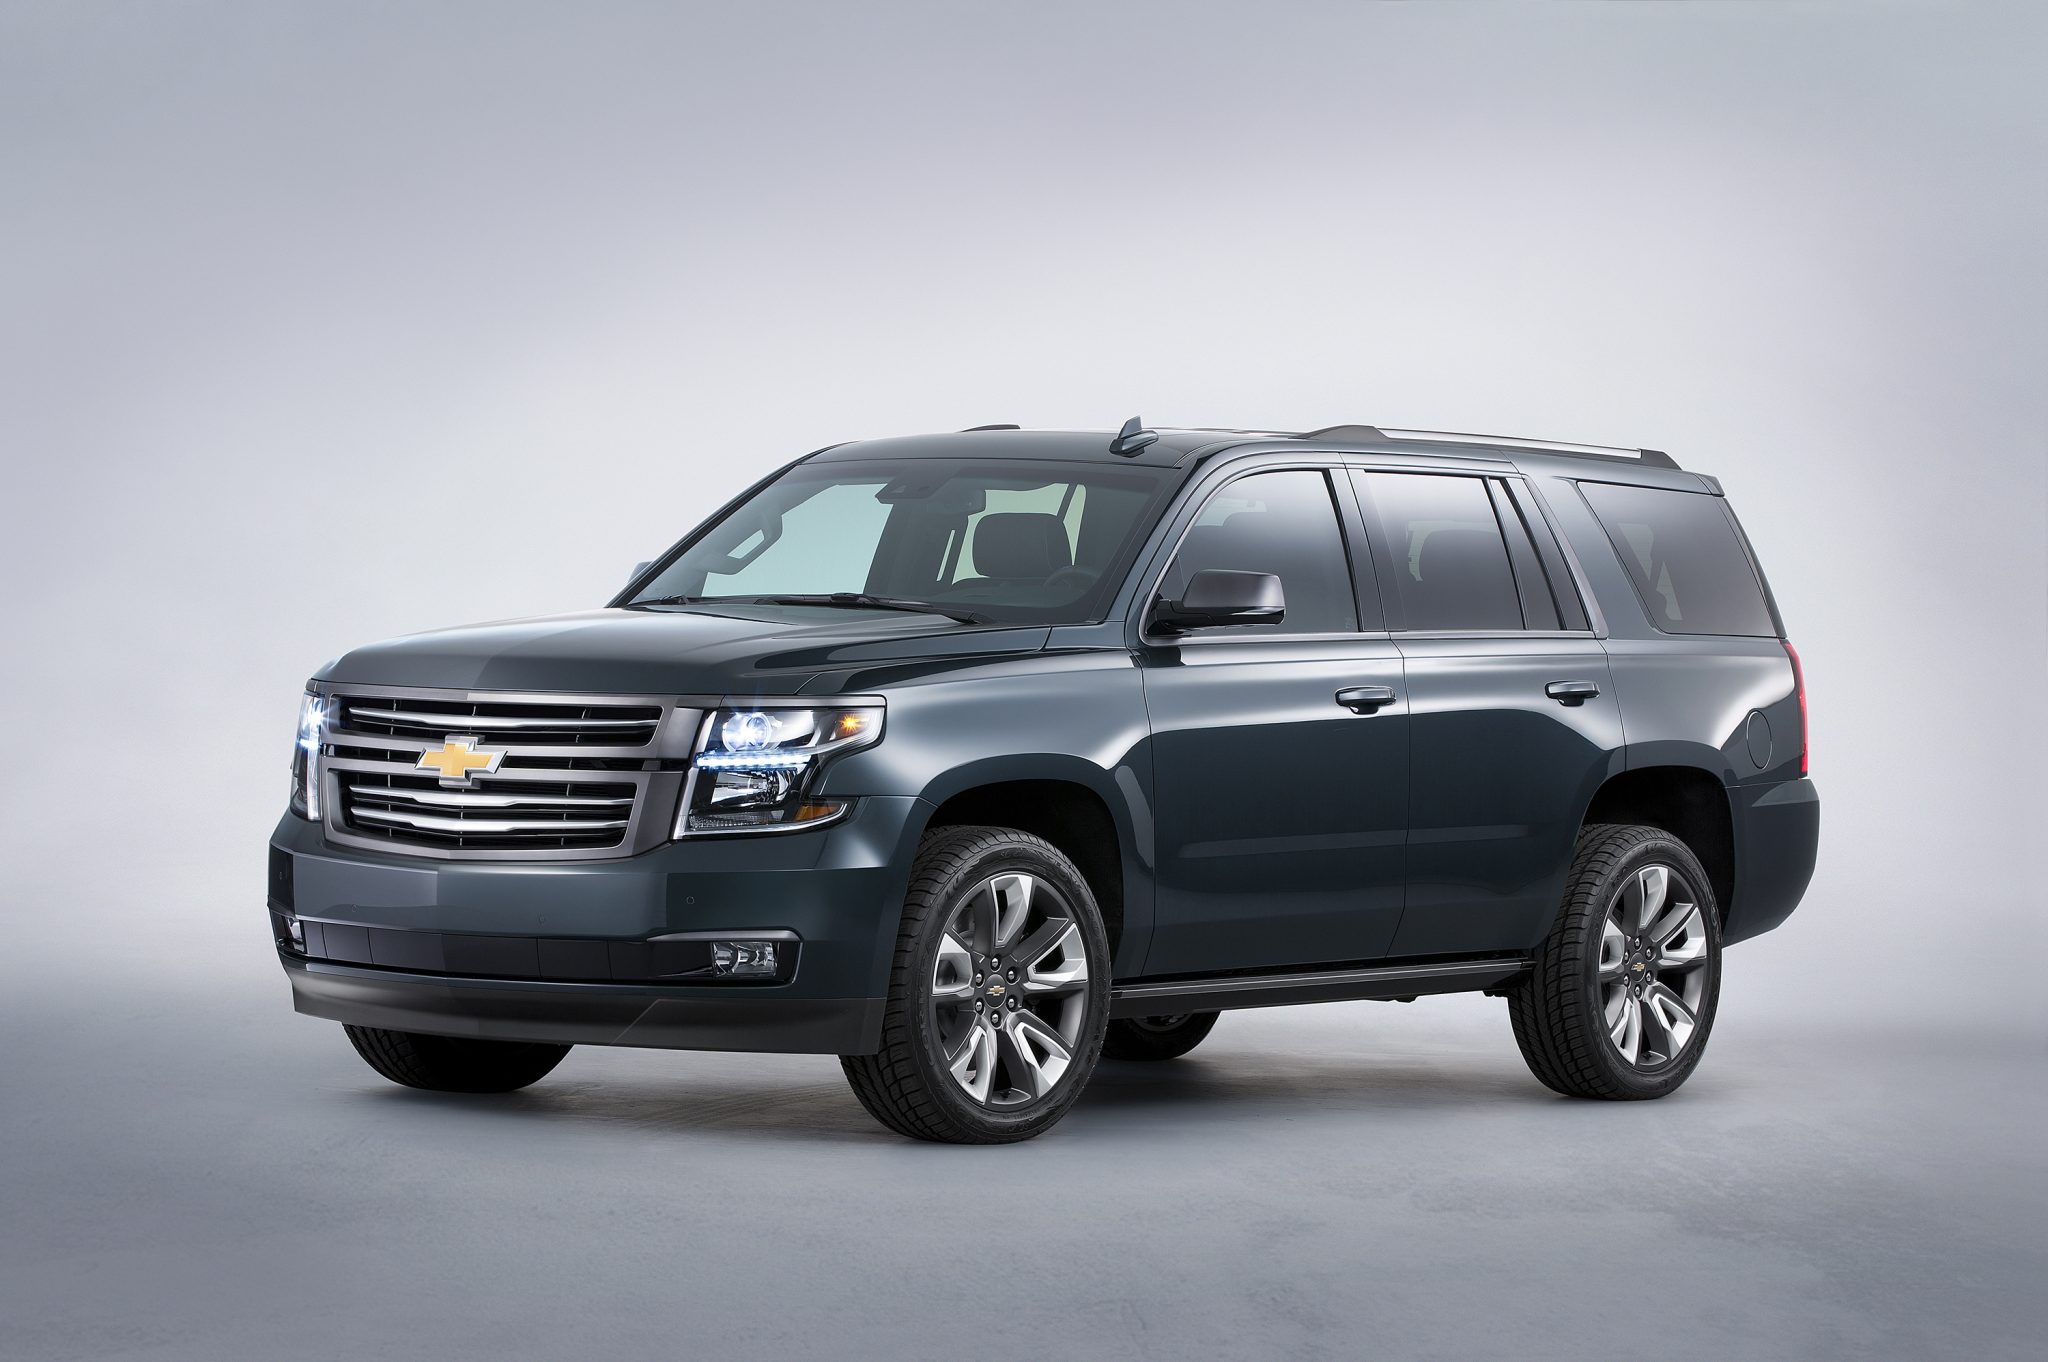 Chevy's Truck and SUV SEMA Concepts Showcase Luxury - The ...